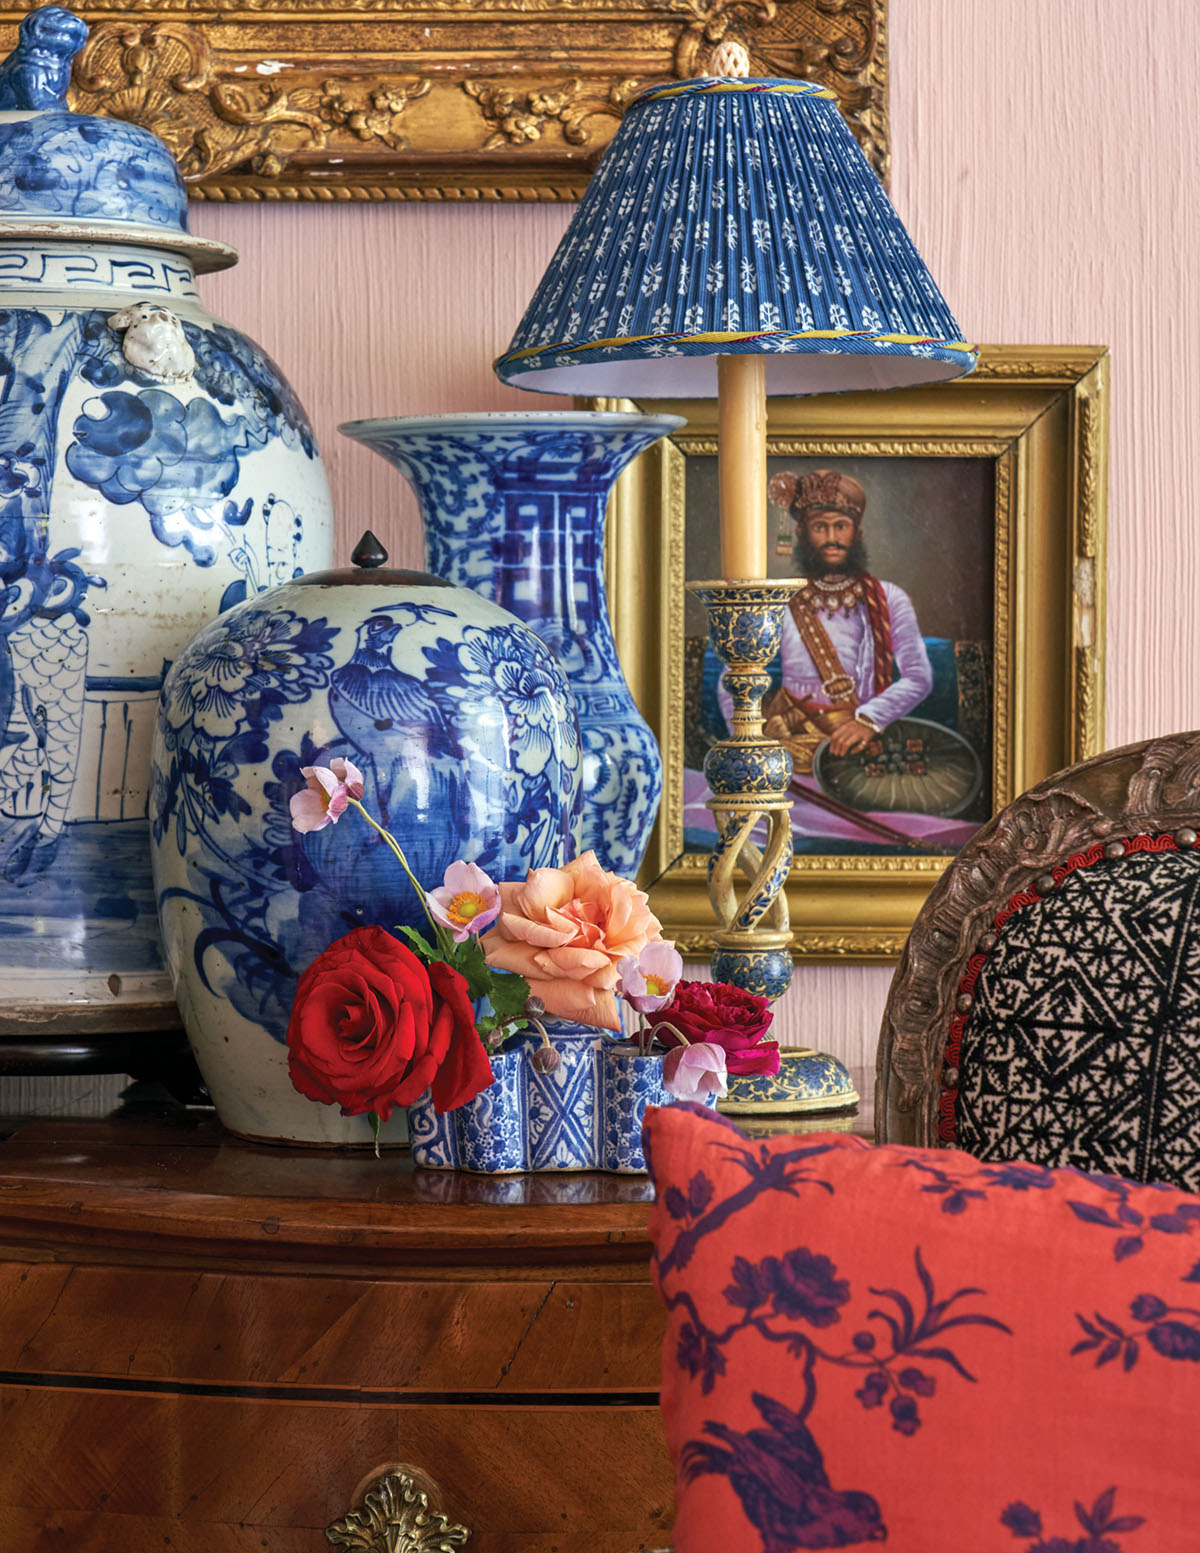 blue-and-white ginger jars, table lamp, and blue-and-white bud vase